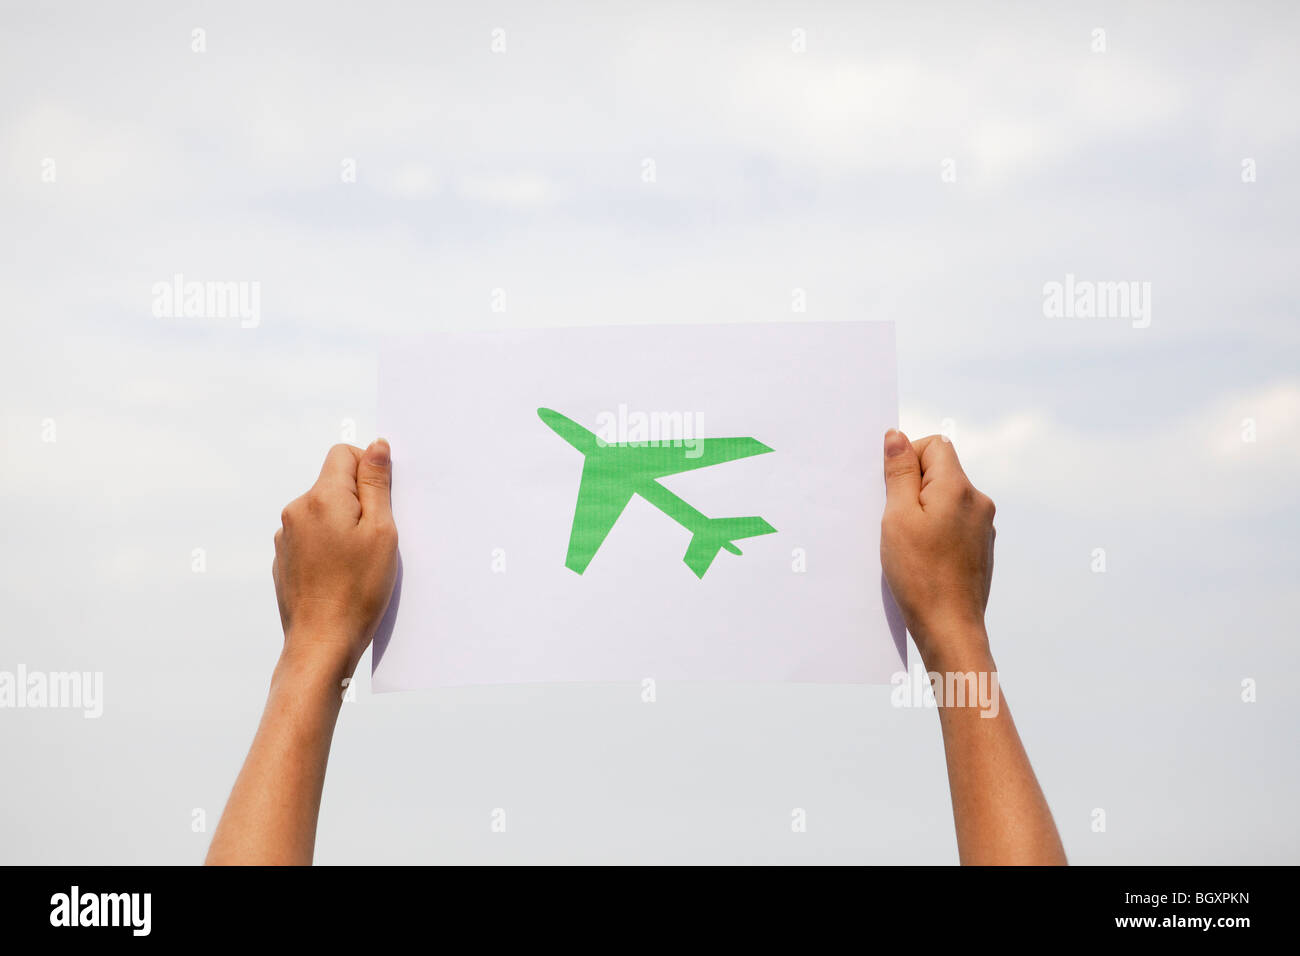 Arms holding paper green plane - Stock Image